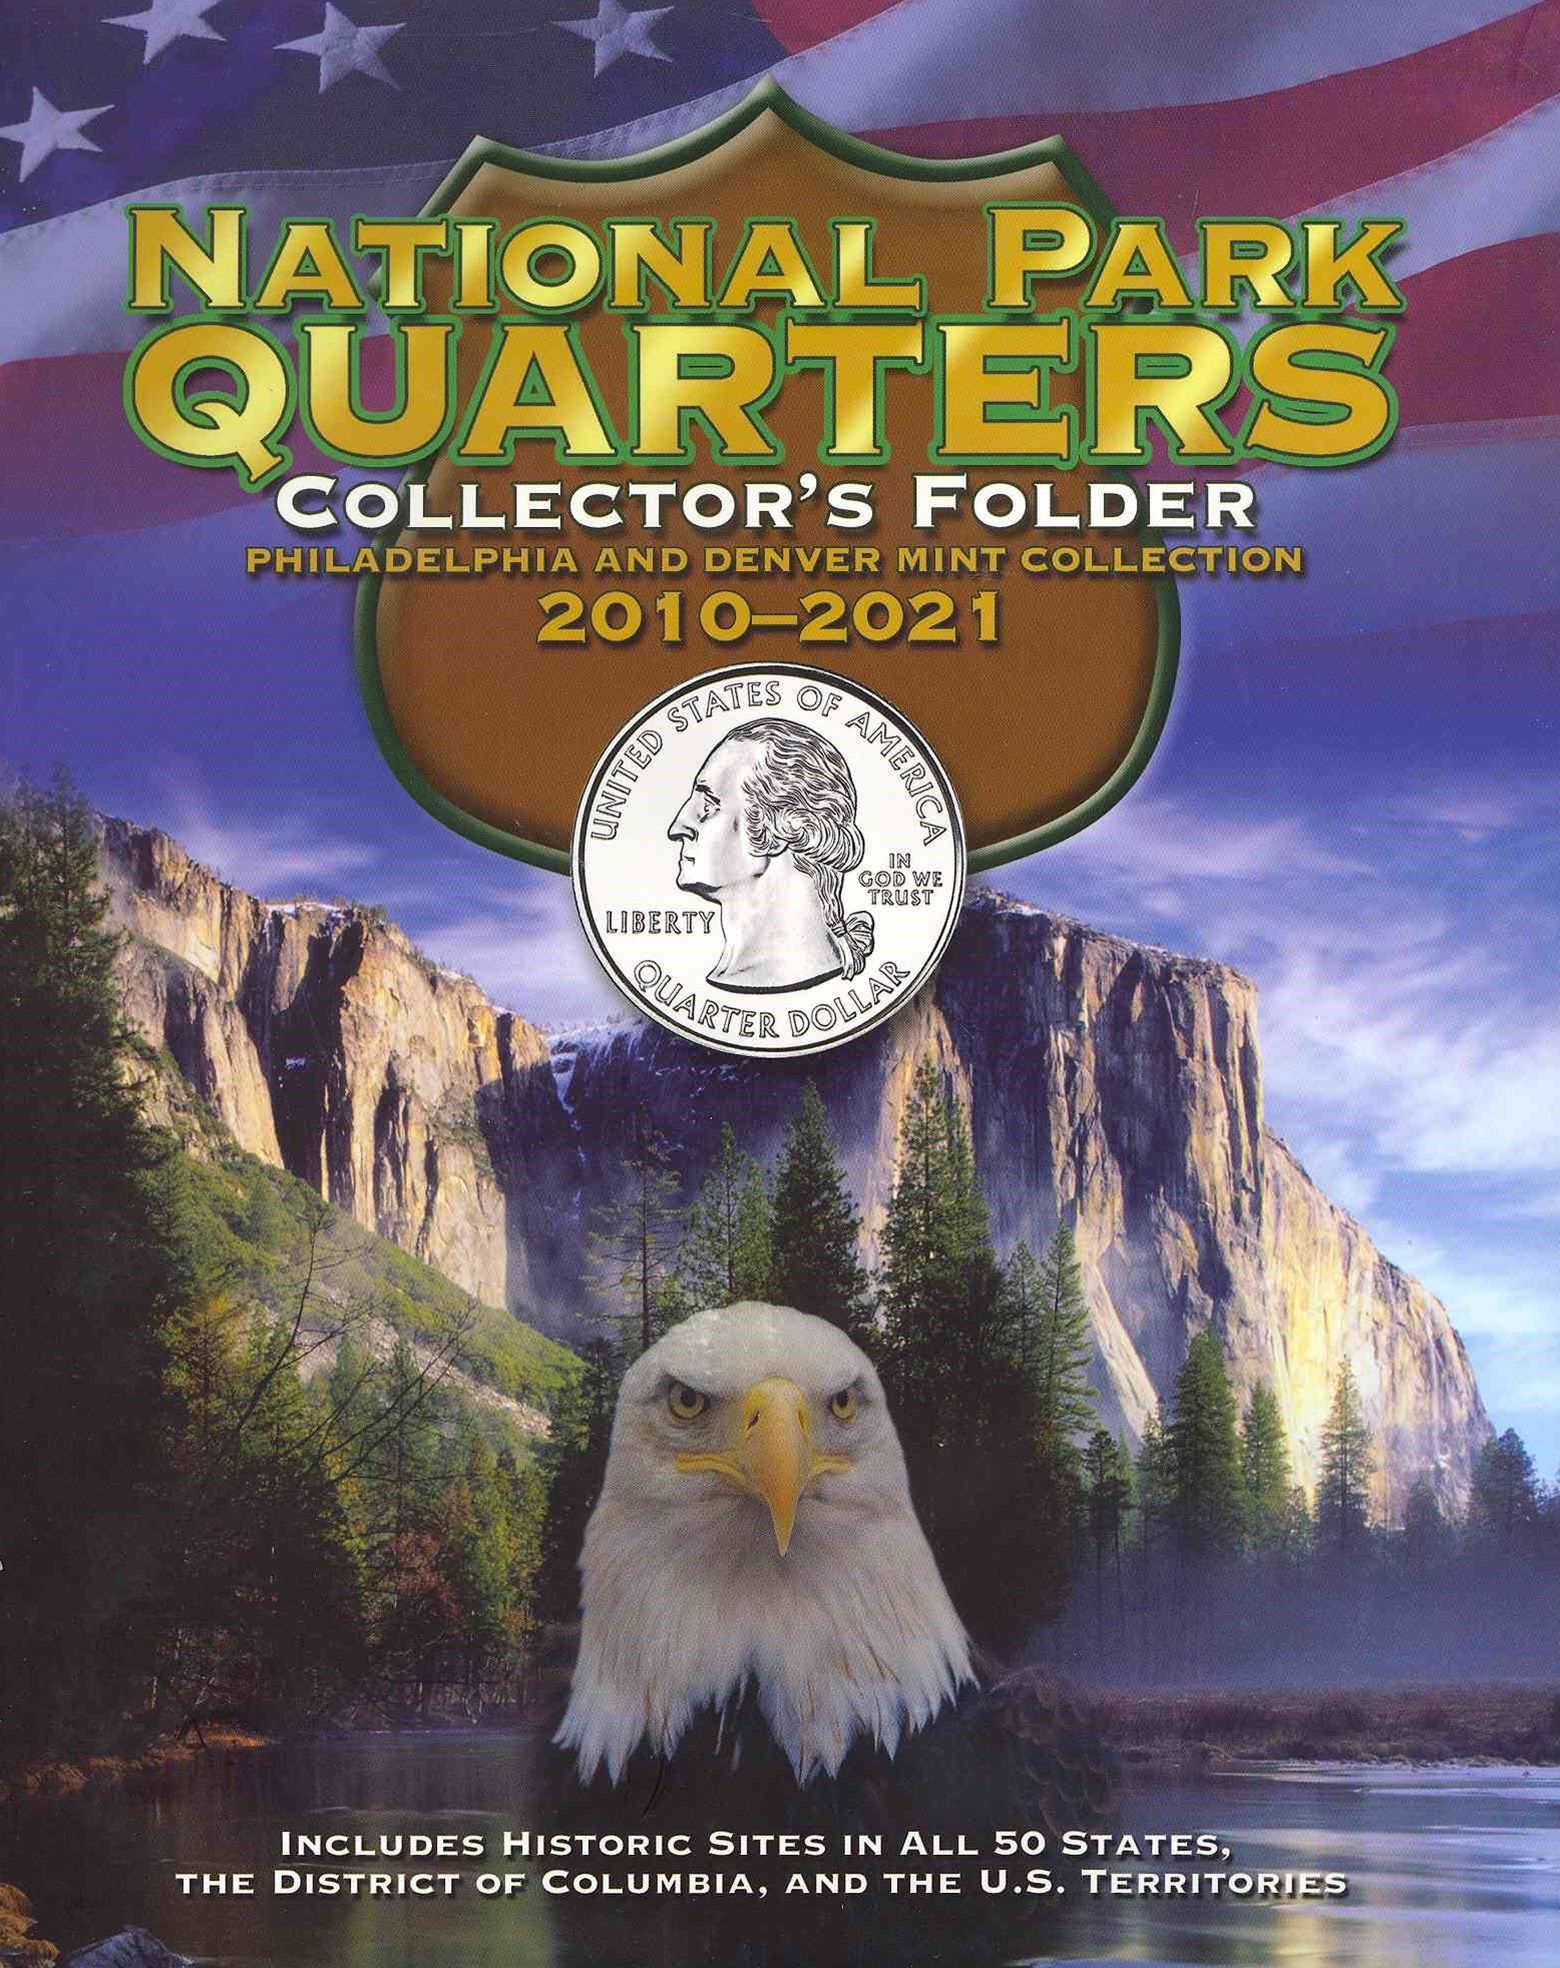 National Park Quarters Collector's Folder 2010-2021